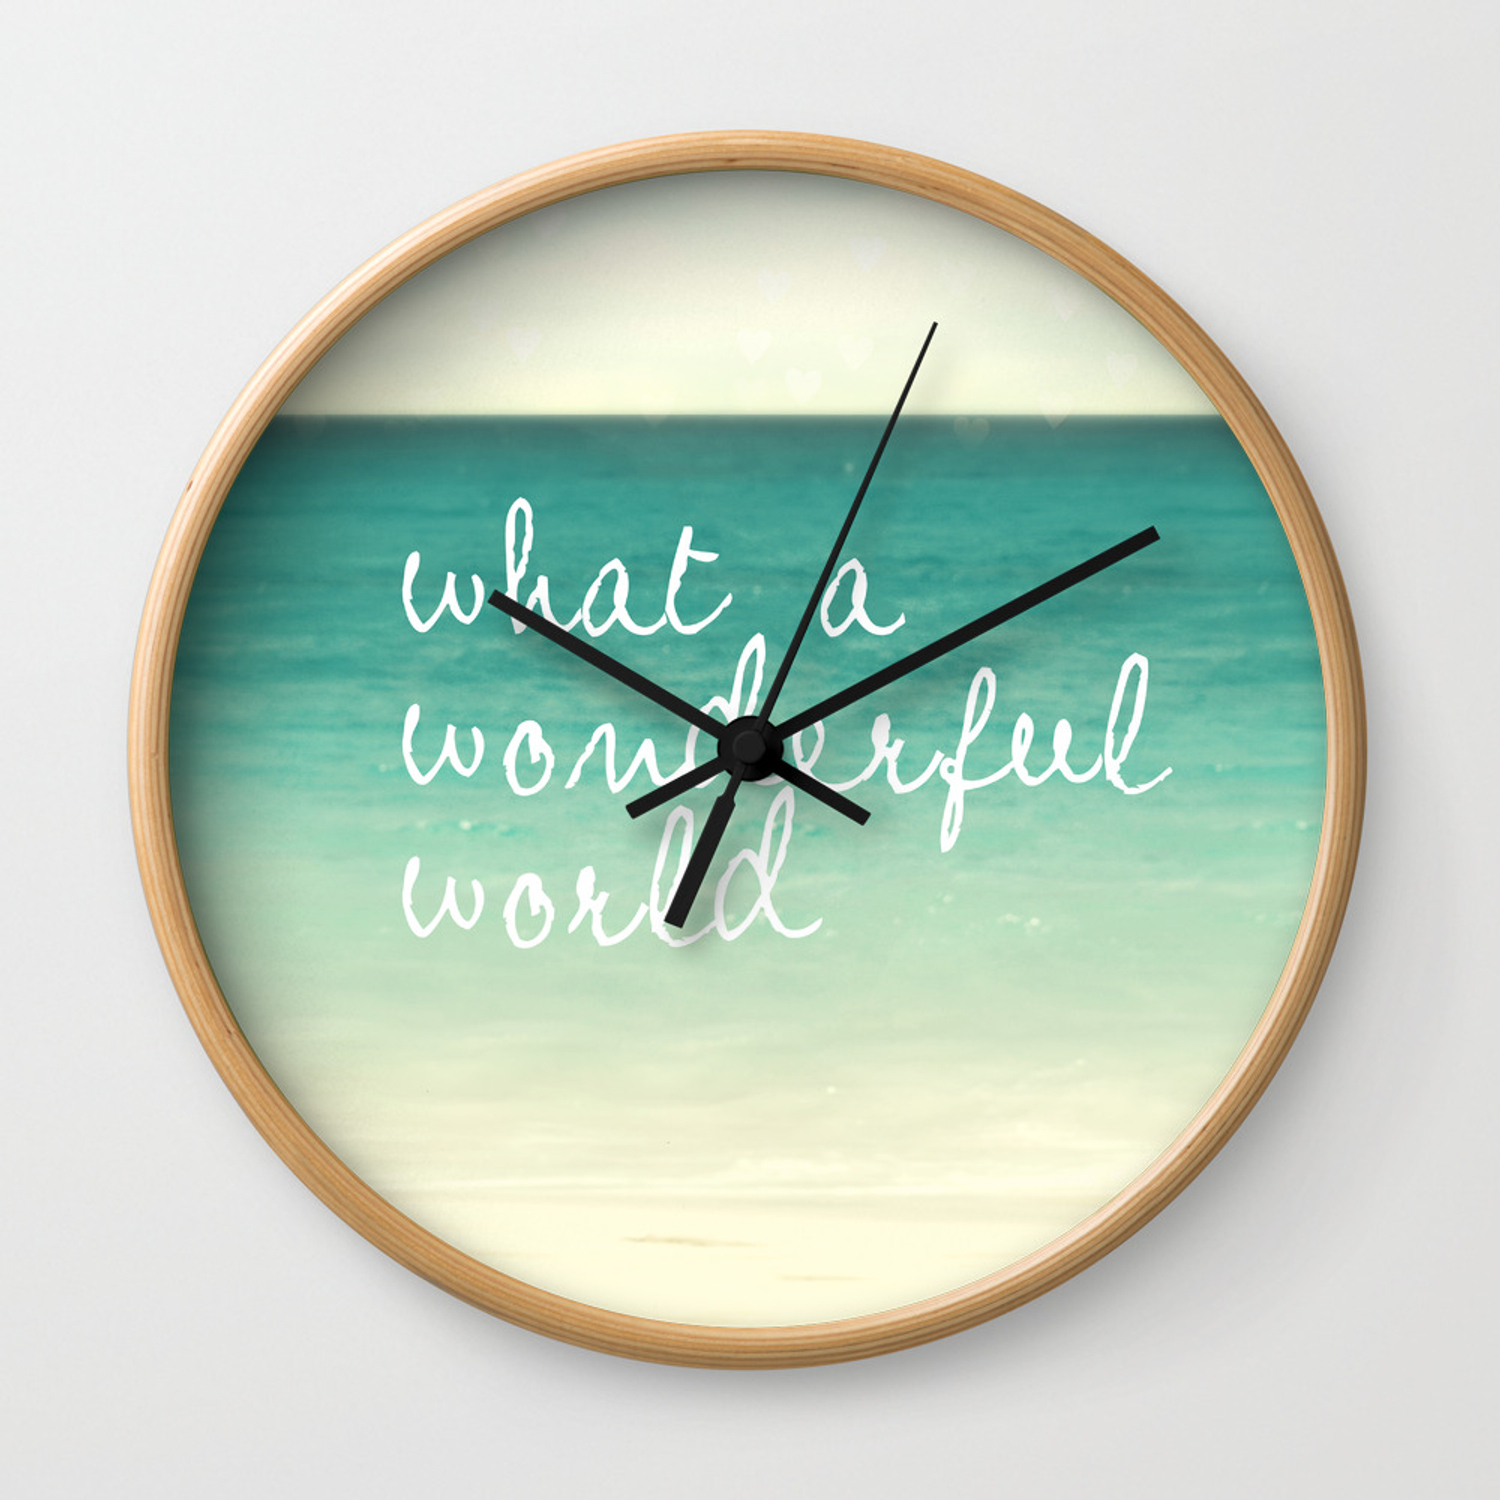 Wonderful World Wall Clock with Wonderful World Wall Decor (Image 29 of 30)